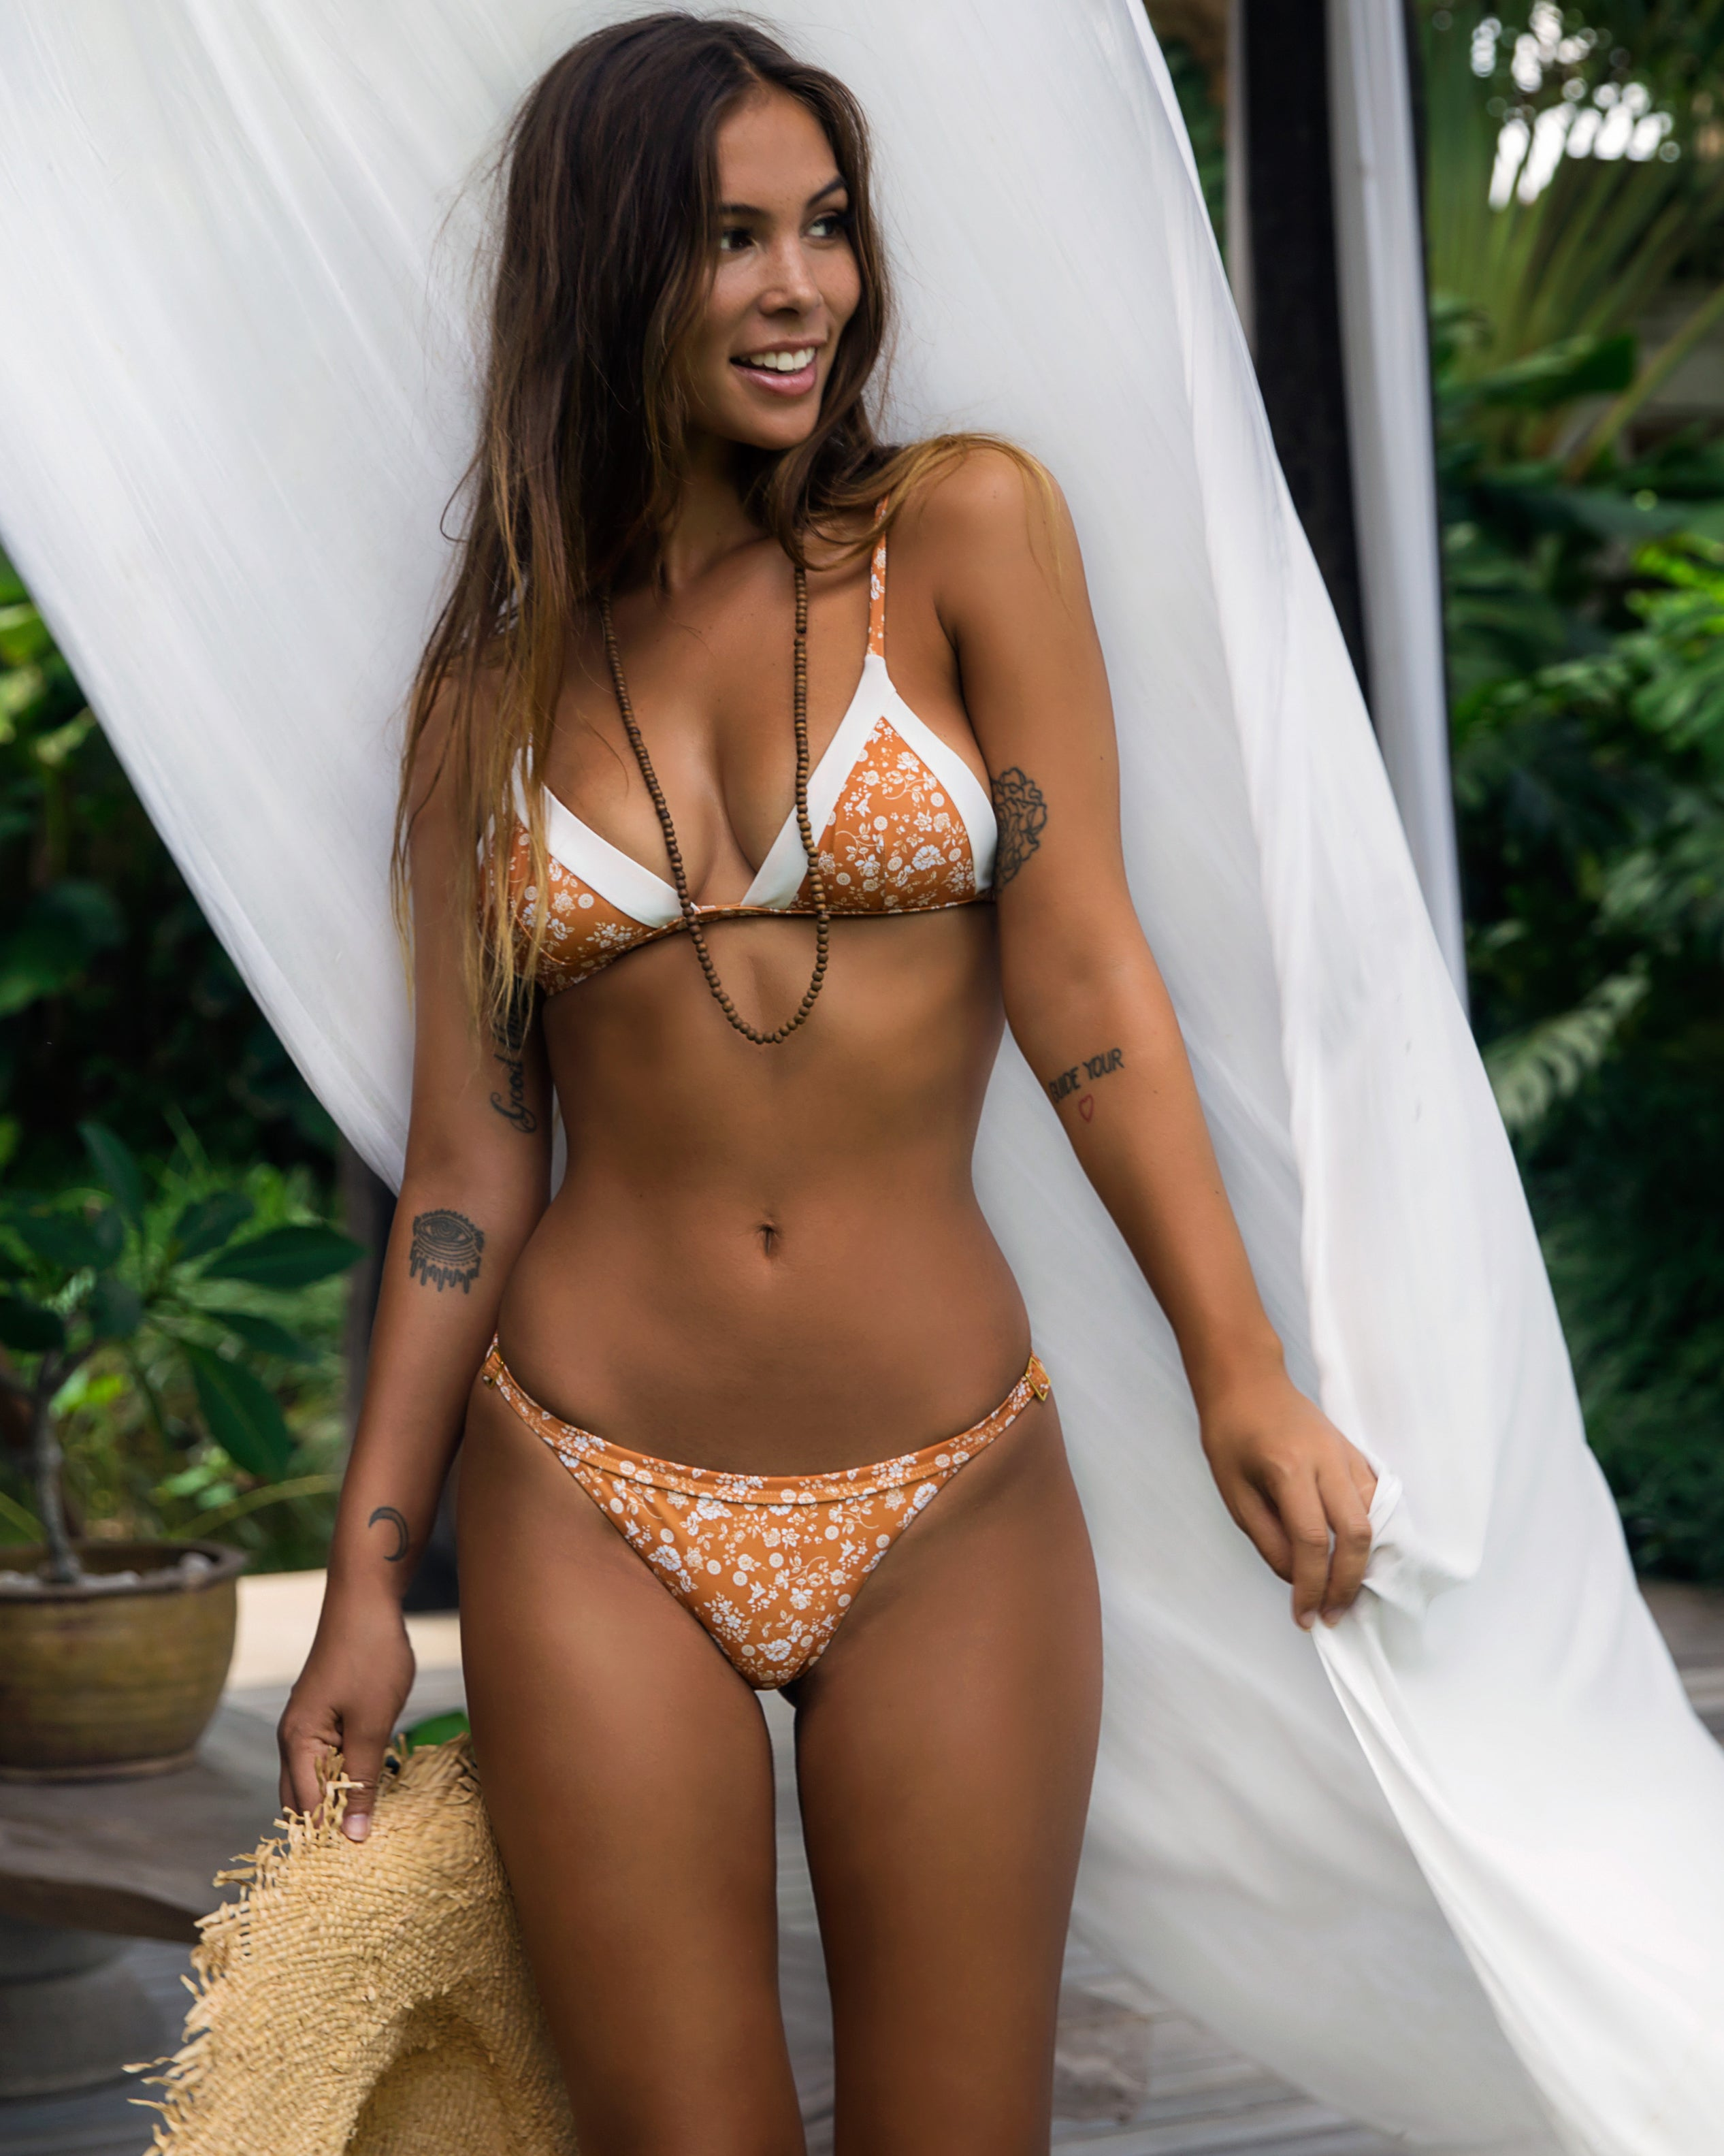 Nexpa Top - Dahlia / Ivory - cheeky cut brazilian surf bikinis Cenote Swimwear that stays on in the surf